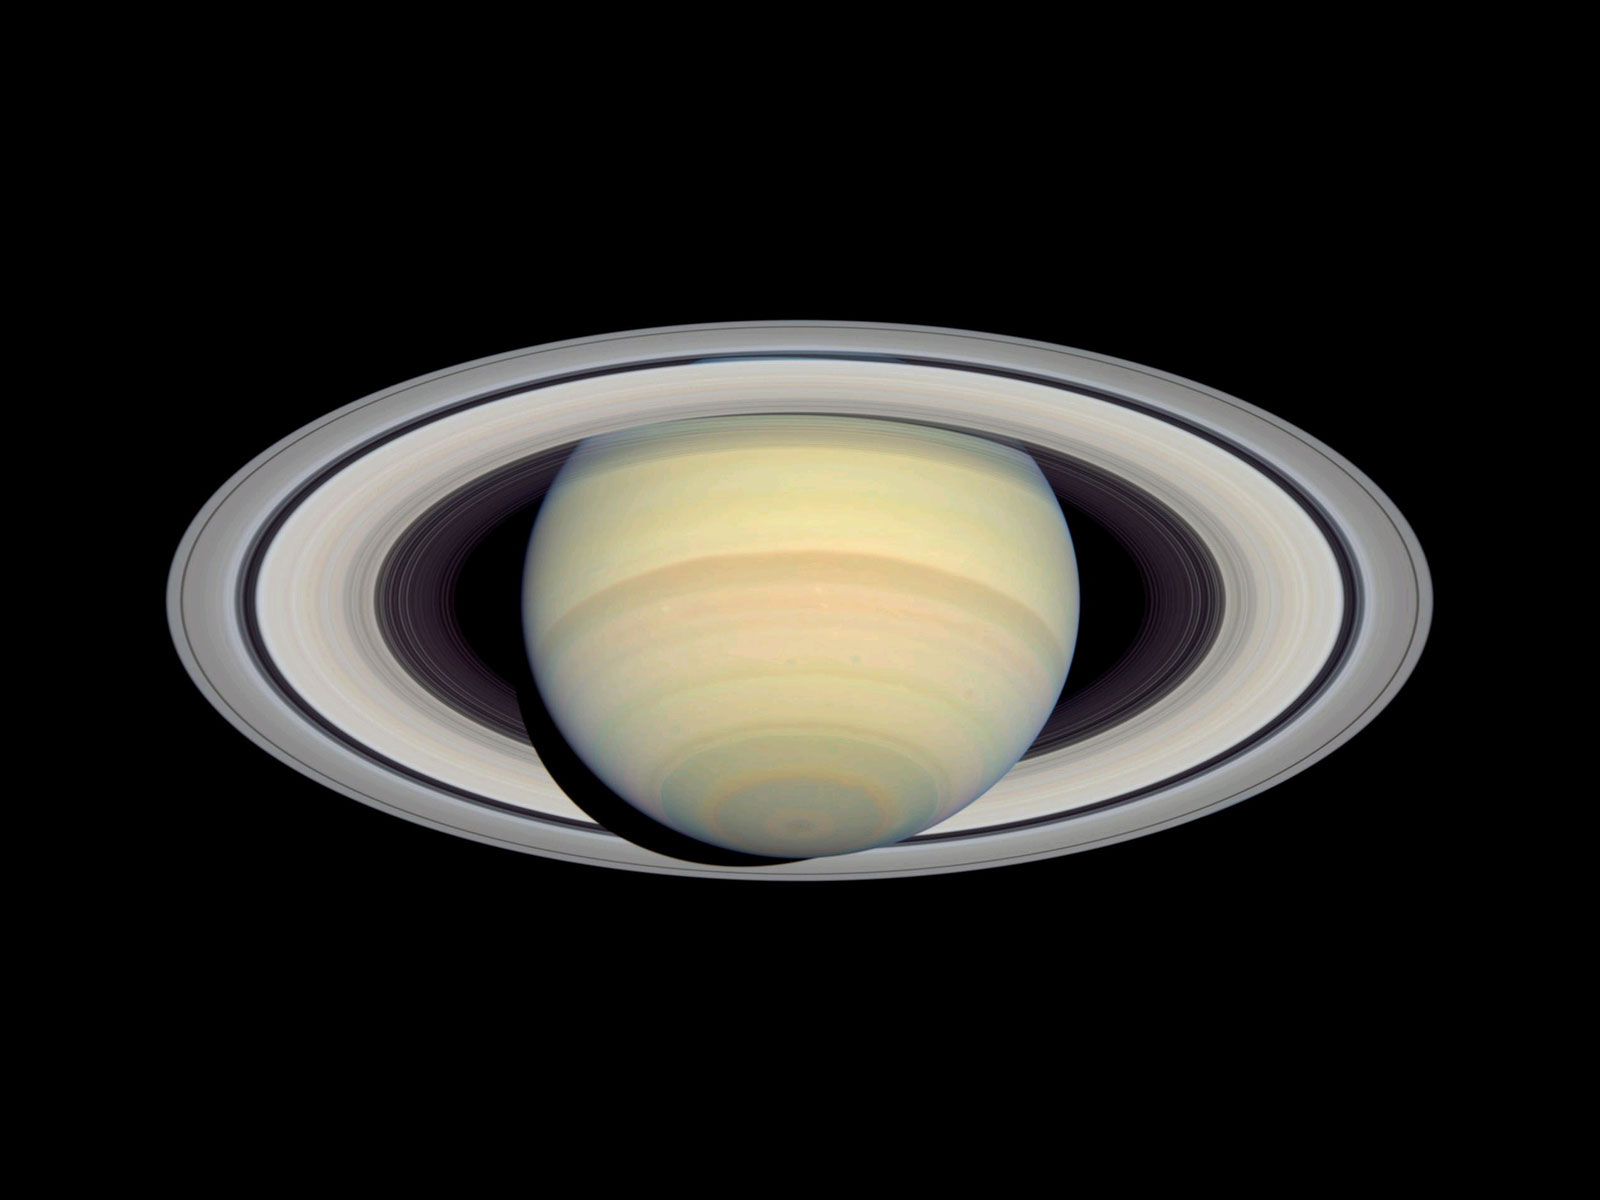 hubble images of saturn - photo #41